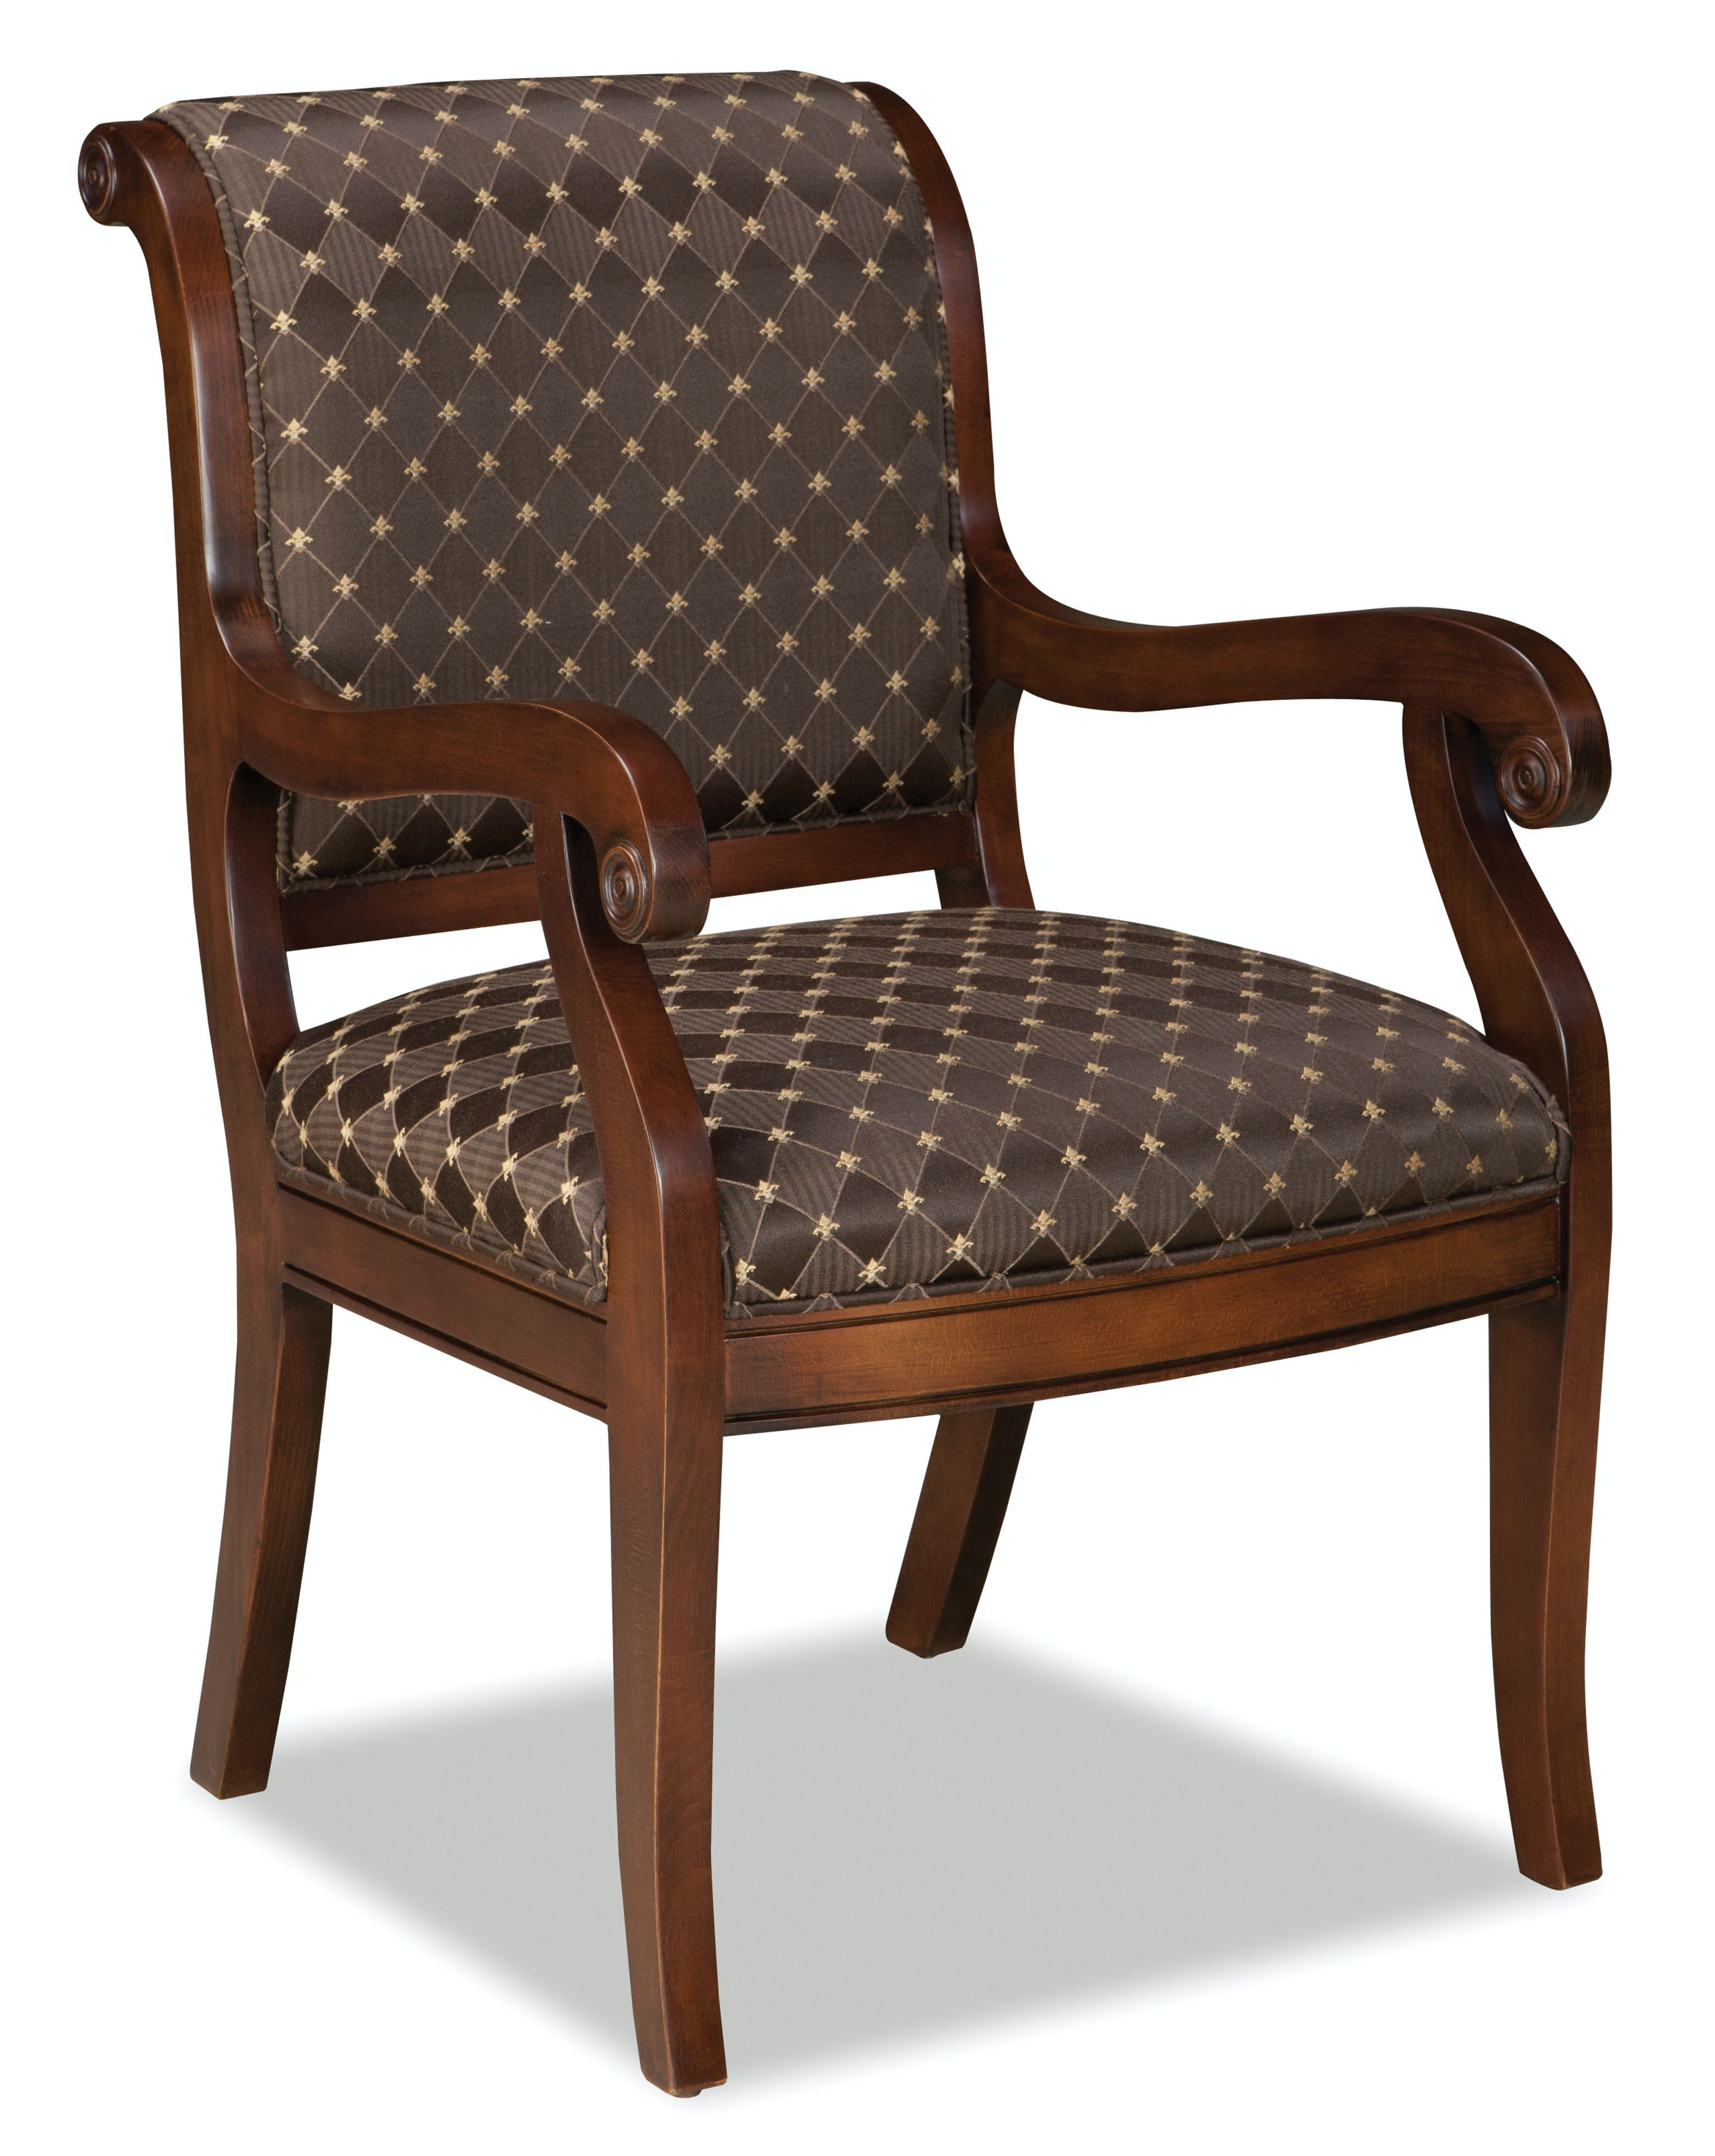 Fairfield Chair Company Derry Occasional Chair 5354 04